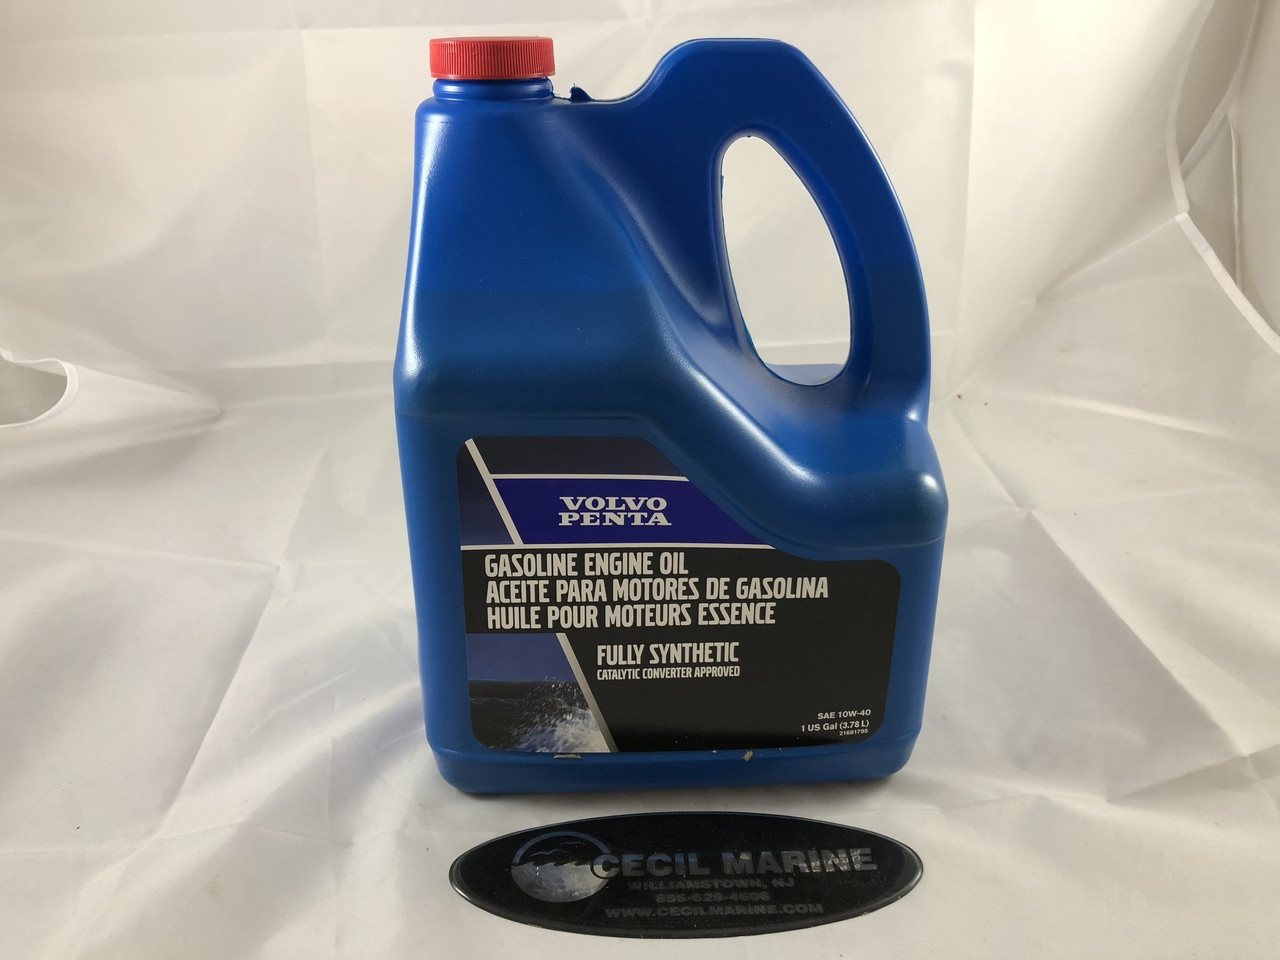 FULL SYNTHETIC ENGINE OIL - GALLON 21681795